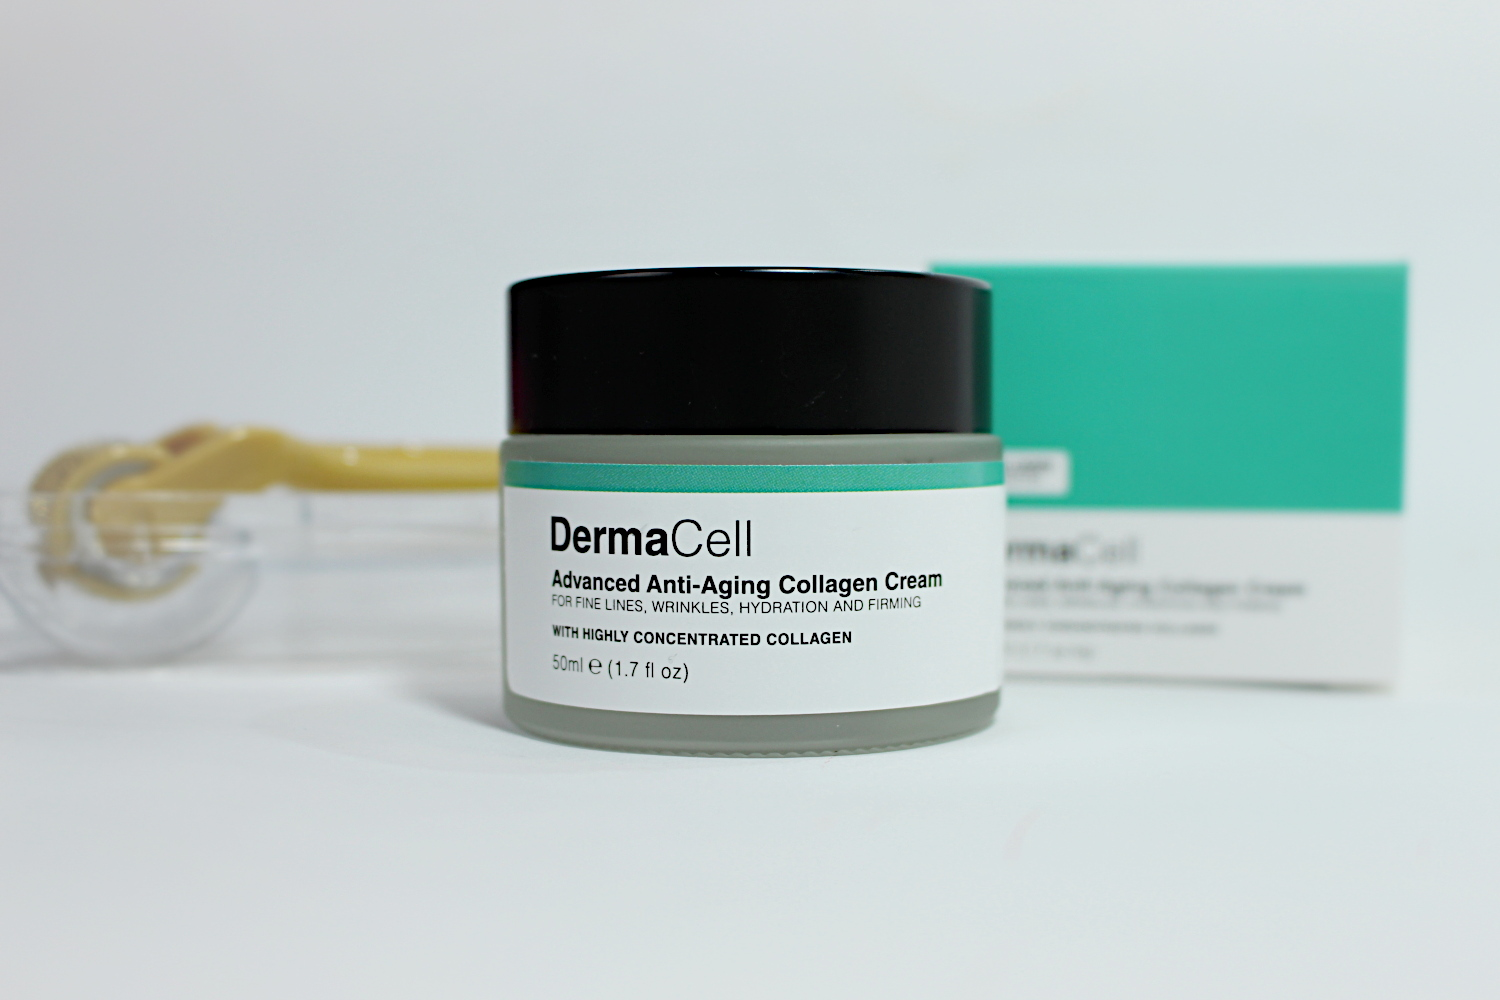 DermaCell Collagen Cream moisturizer review blogger